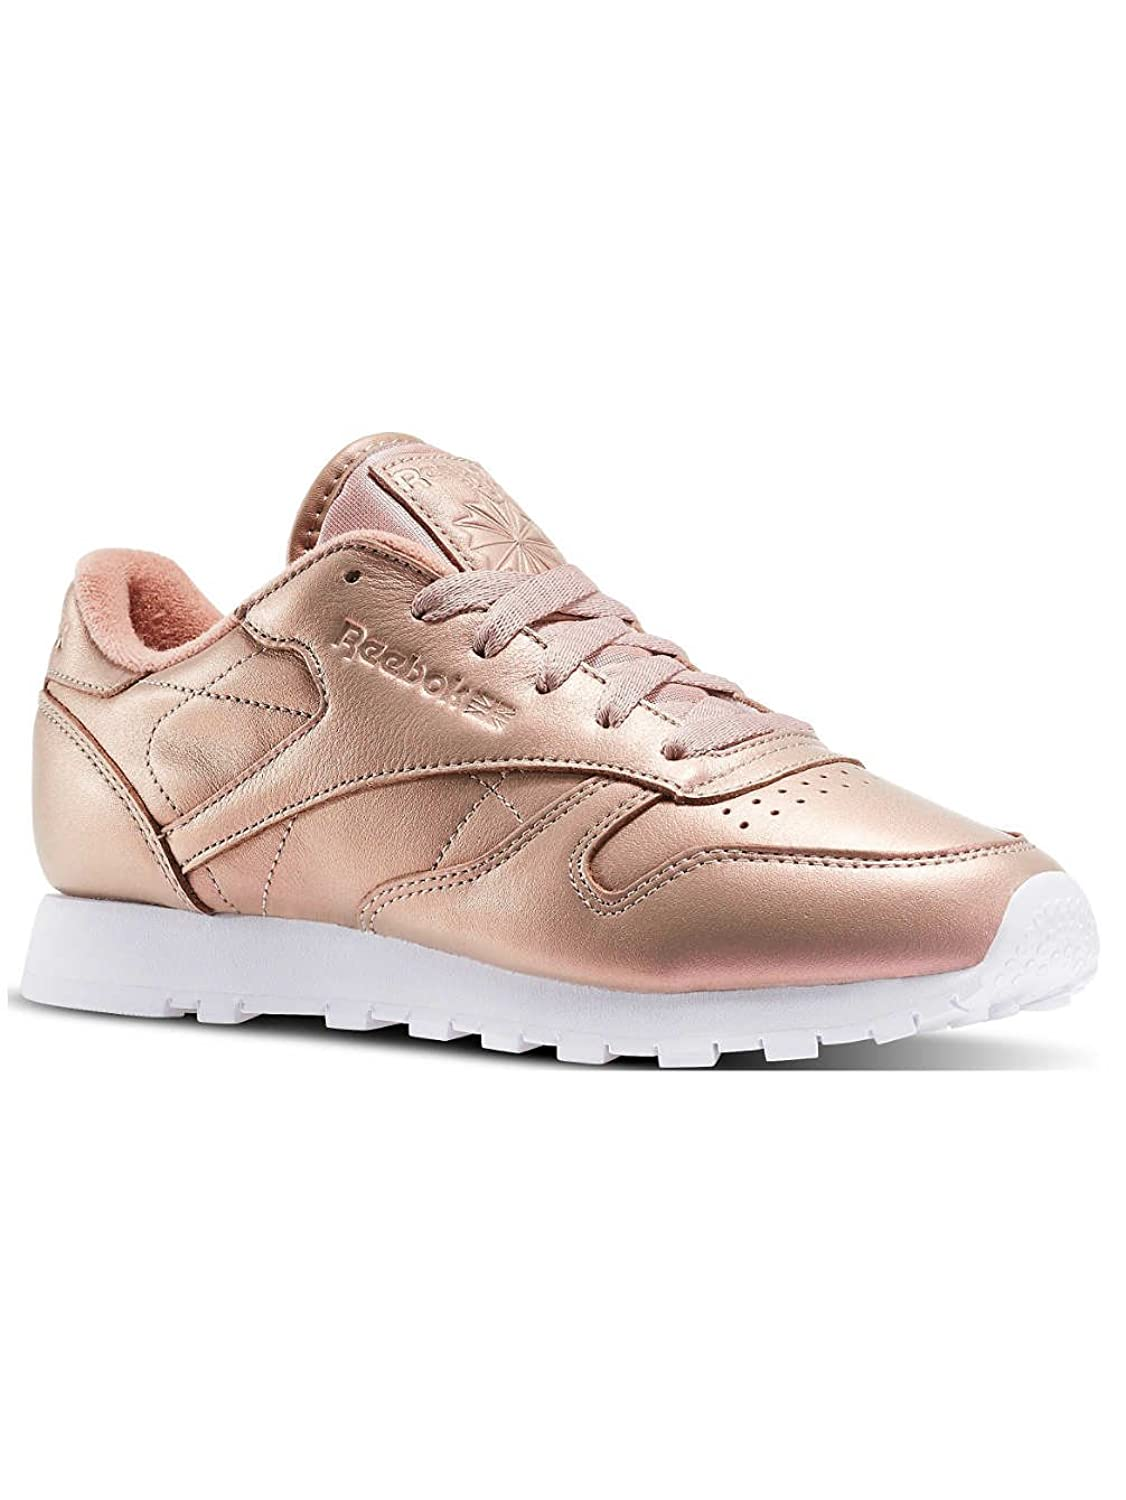 Amazon.com: Reebok Classic Leather Pearlized Womens Sneakers Pink: Clothing